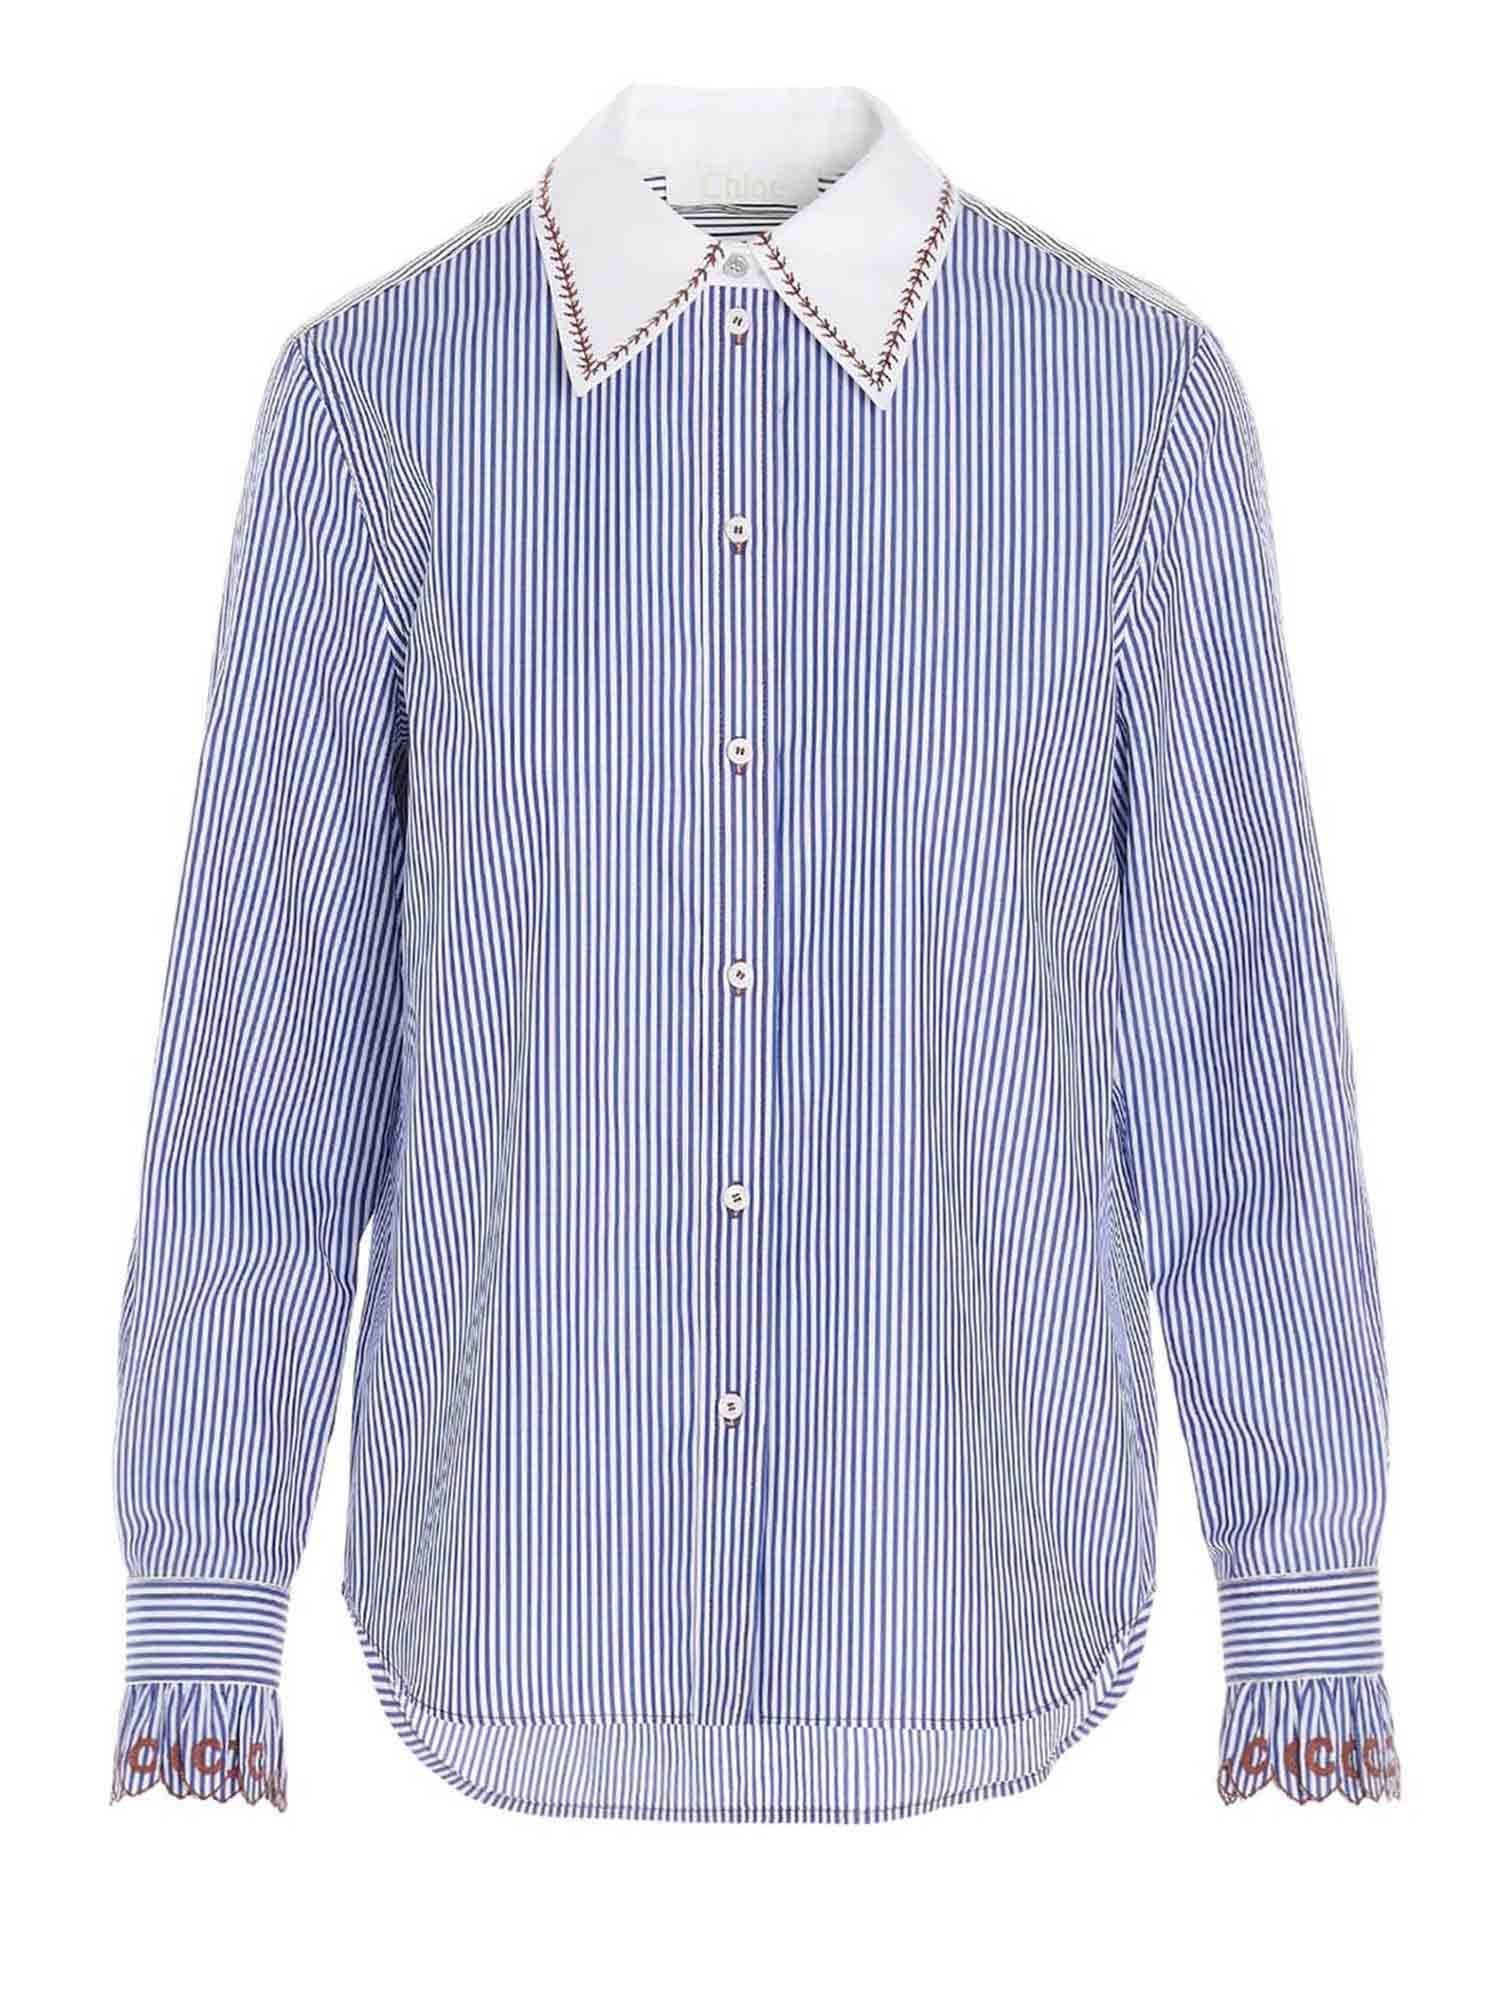 Chloé Cottons BLUE STRIPED SHIRT WITH EMBROIDERED COLLAR